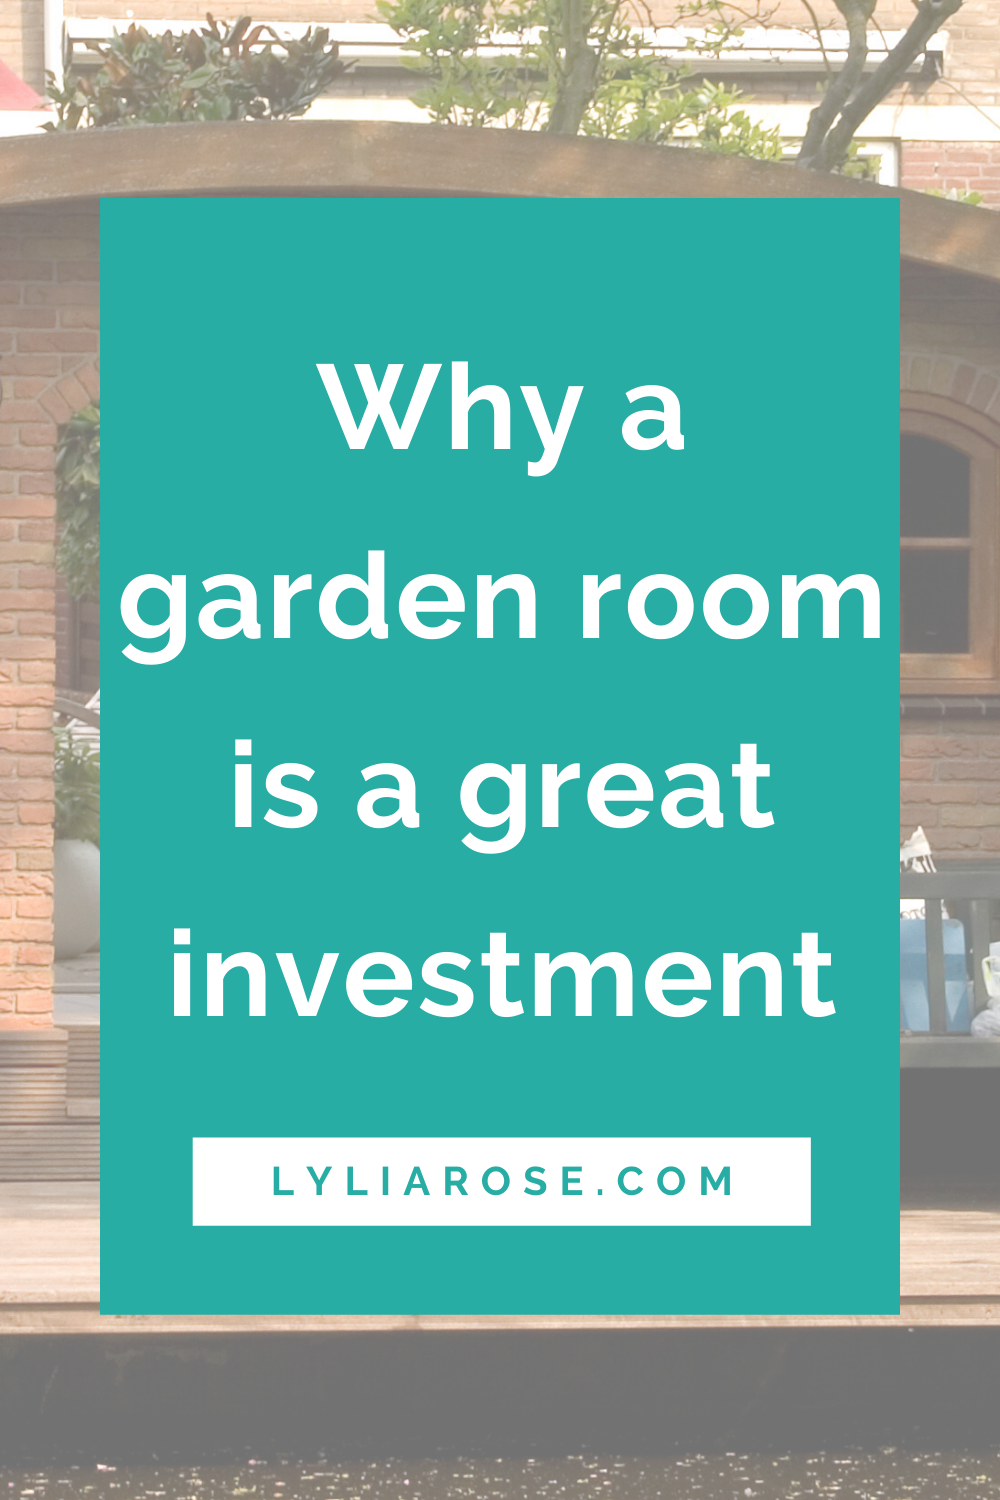 Why a garden room is a great investment